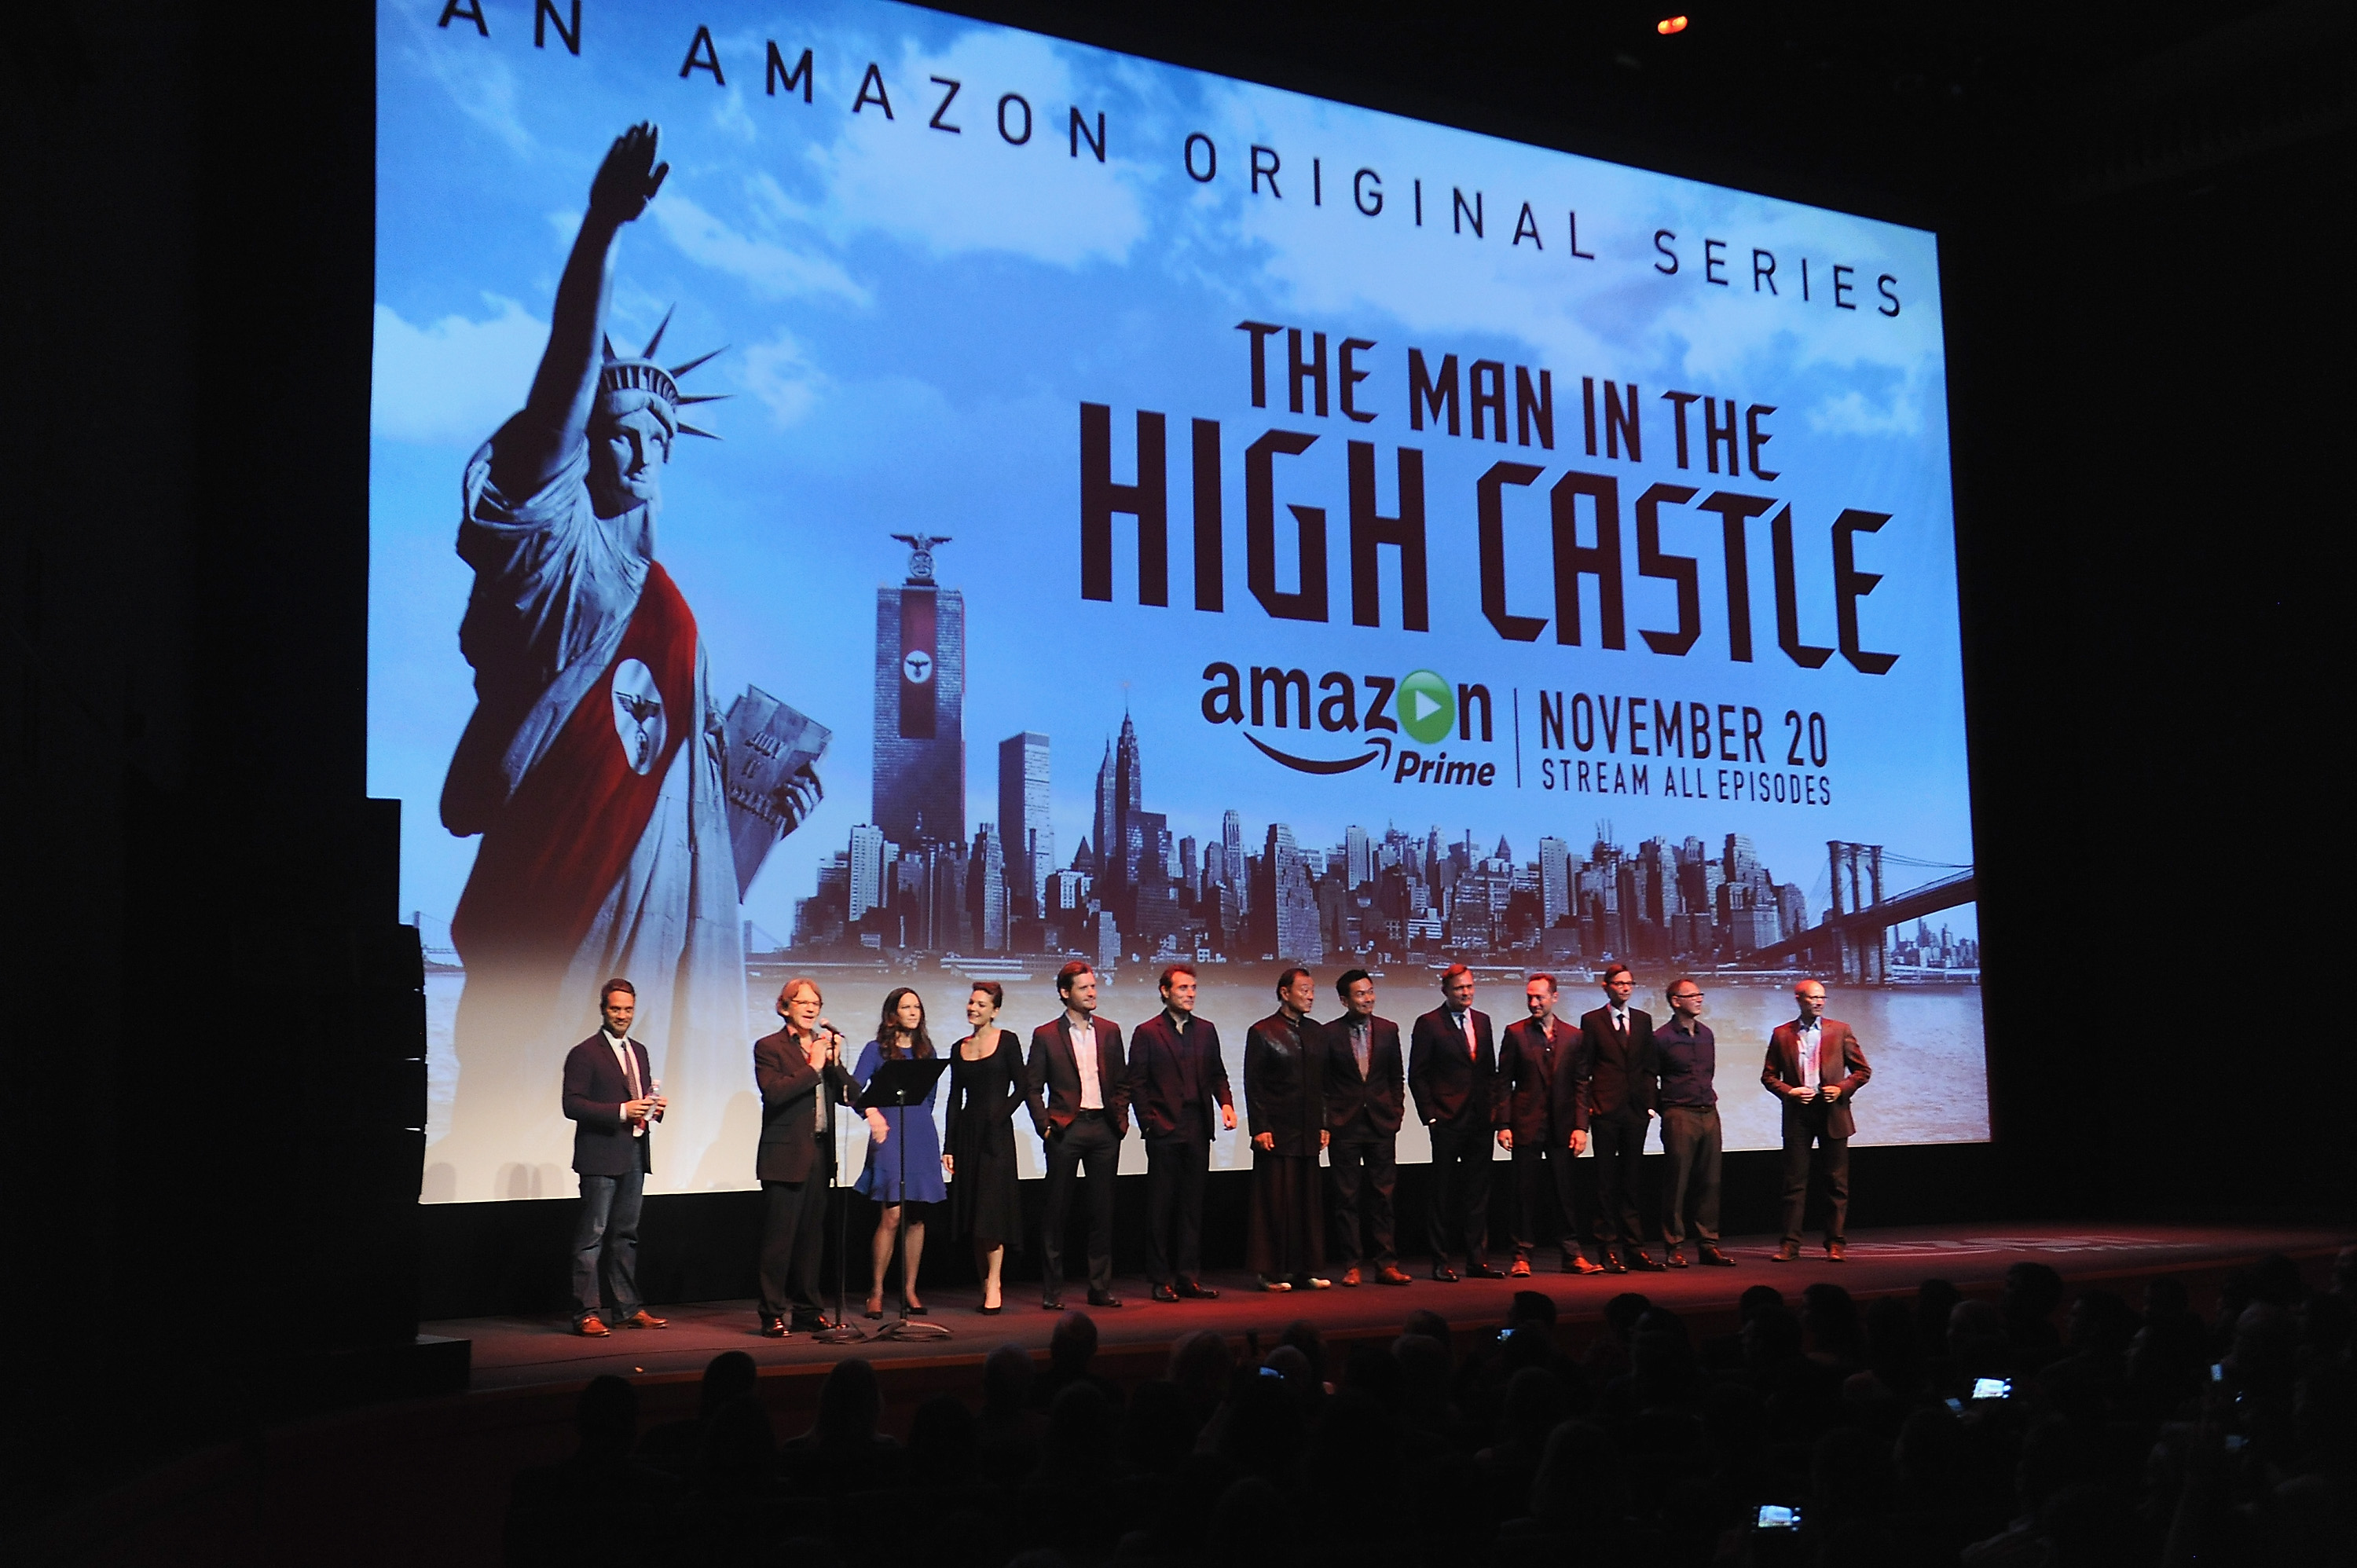 NEW YORK, NY - NOVEMBER 02:  (L-R) Morgan Wandell,Frank Spotnitz ,  Isa Dick Hackett, Alexa Davalos, Luke Kleintank, Rufus Sewell, Cary-Hiroyuki Tagawa, Joel de la Fuente, Carsten Norgaard, and DJ Qualls on stage during the New York premiere of Amazon Original's  Man In The High Castle  at Alice Tully Hall on November 2, 2015 in New York City.